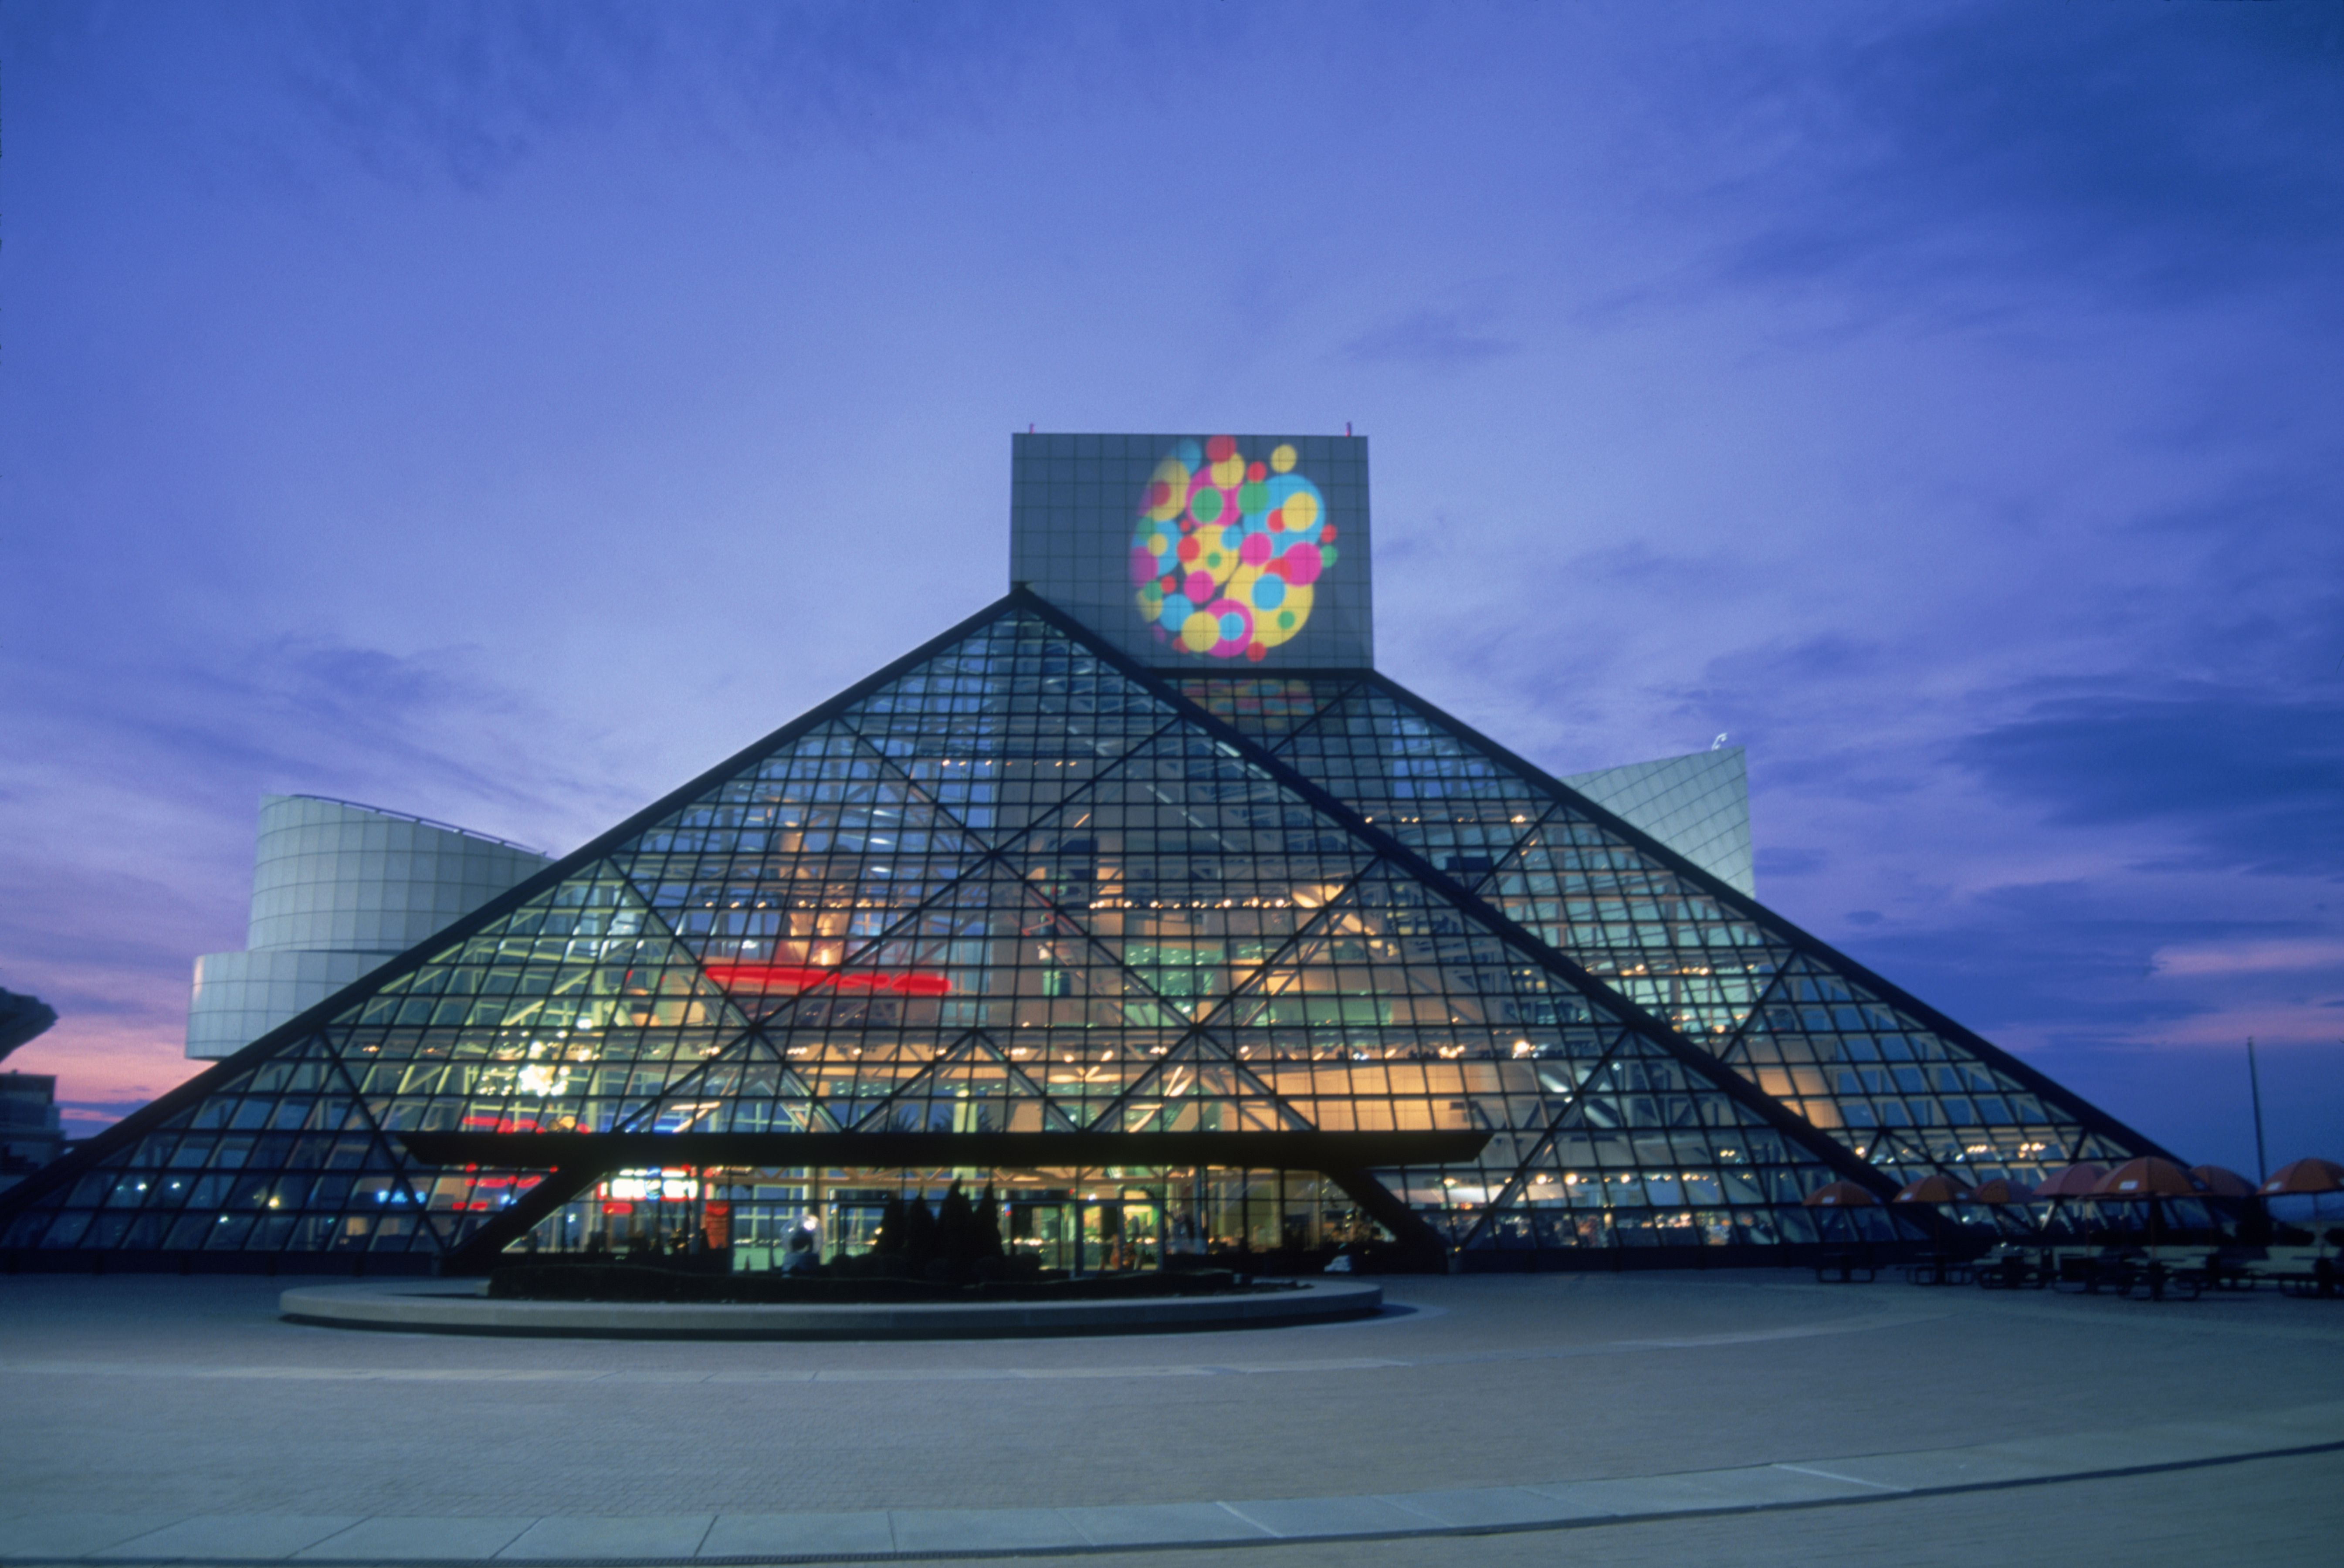 Pei-designed glass triangular Rock and Roll Hall of Fame, Cleveland, Ohio